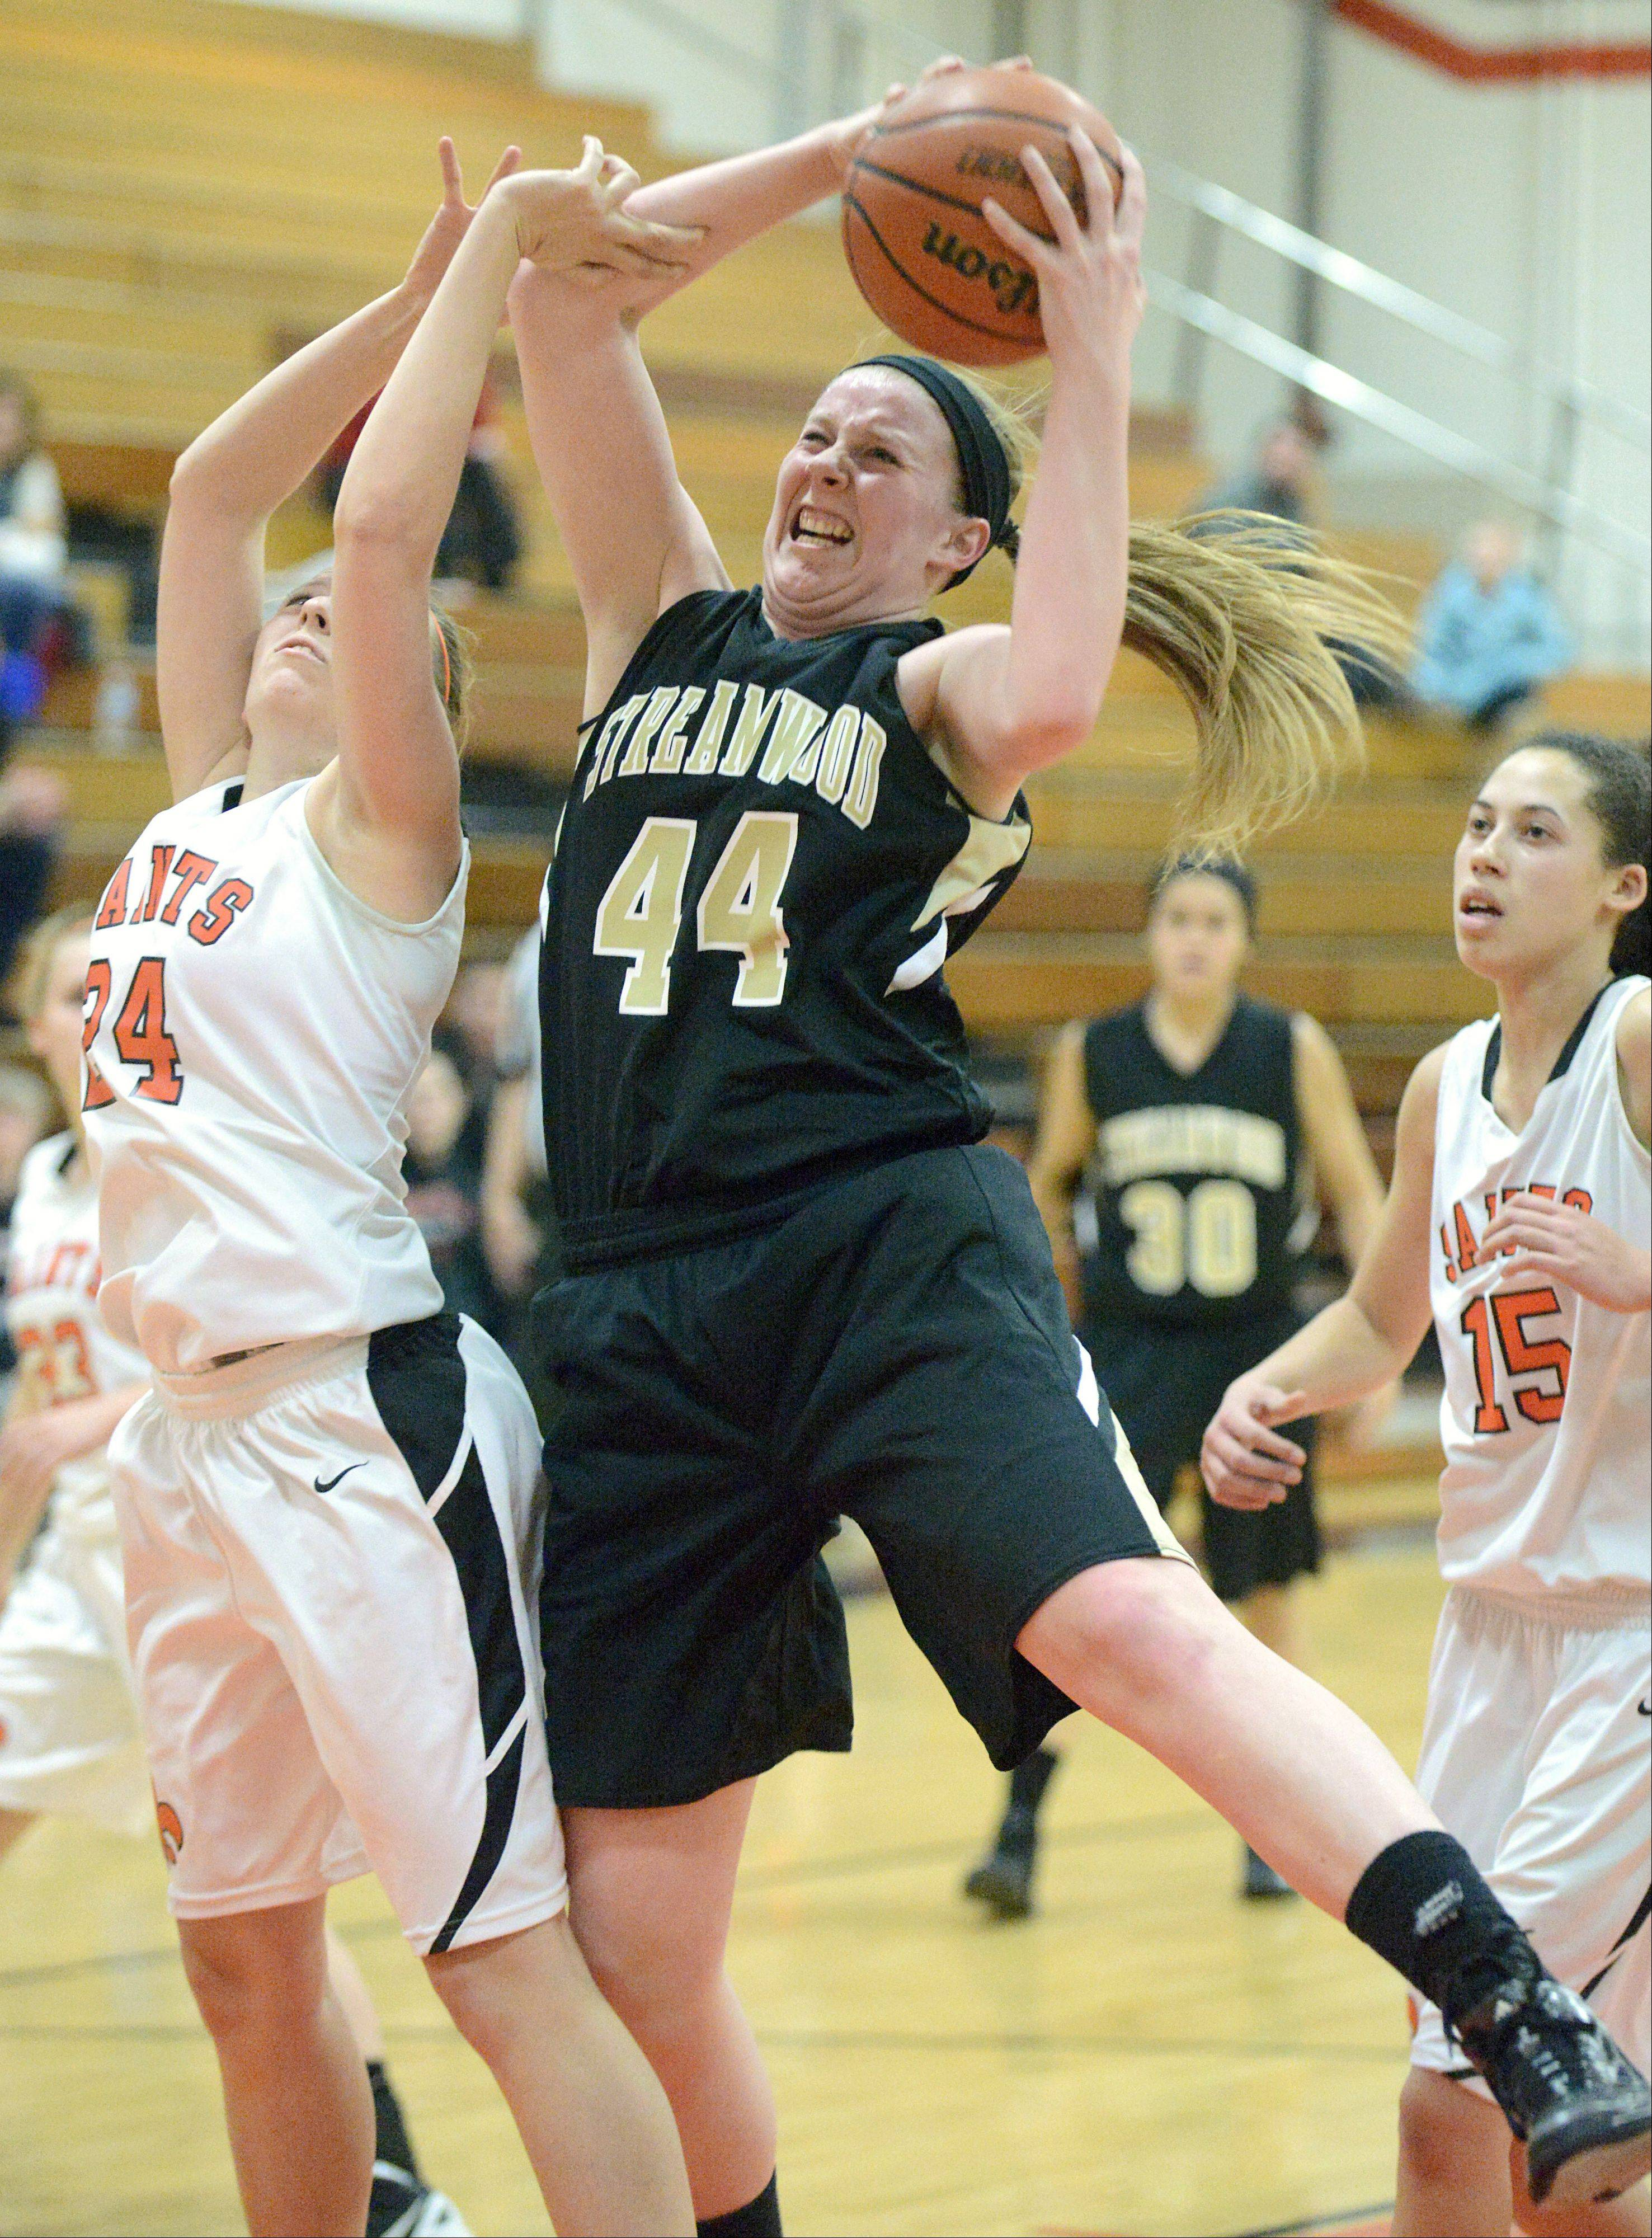 Streamwood's Hannah McGlone (44) reaches for a rebound against St. Charles East.